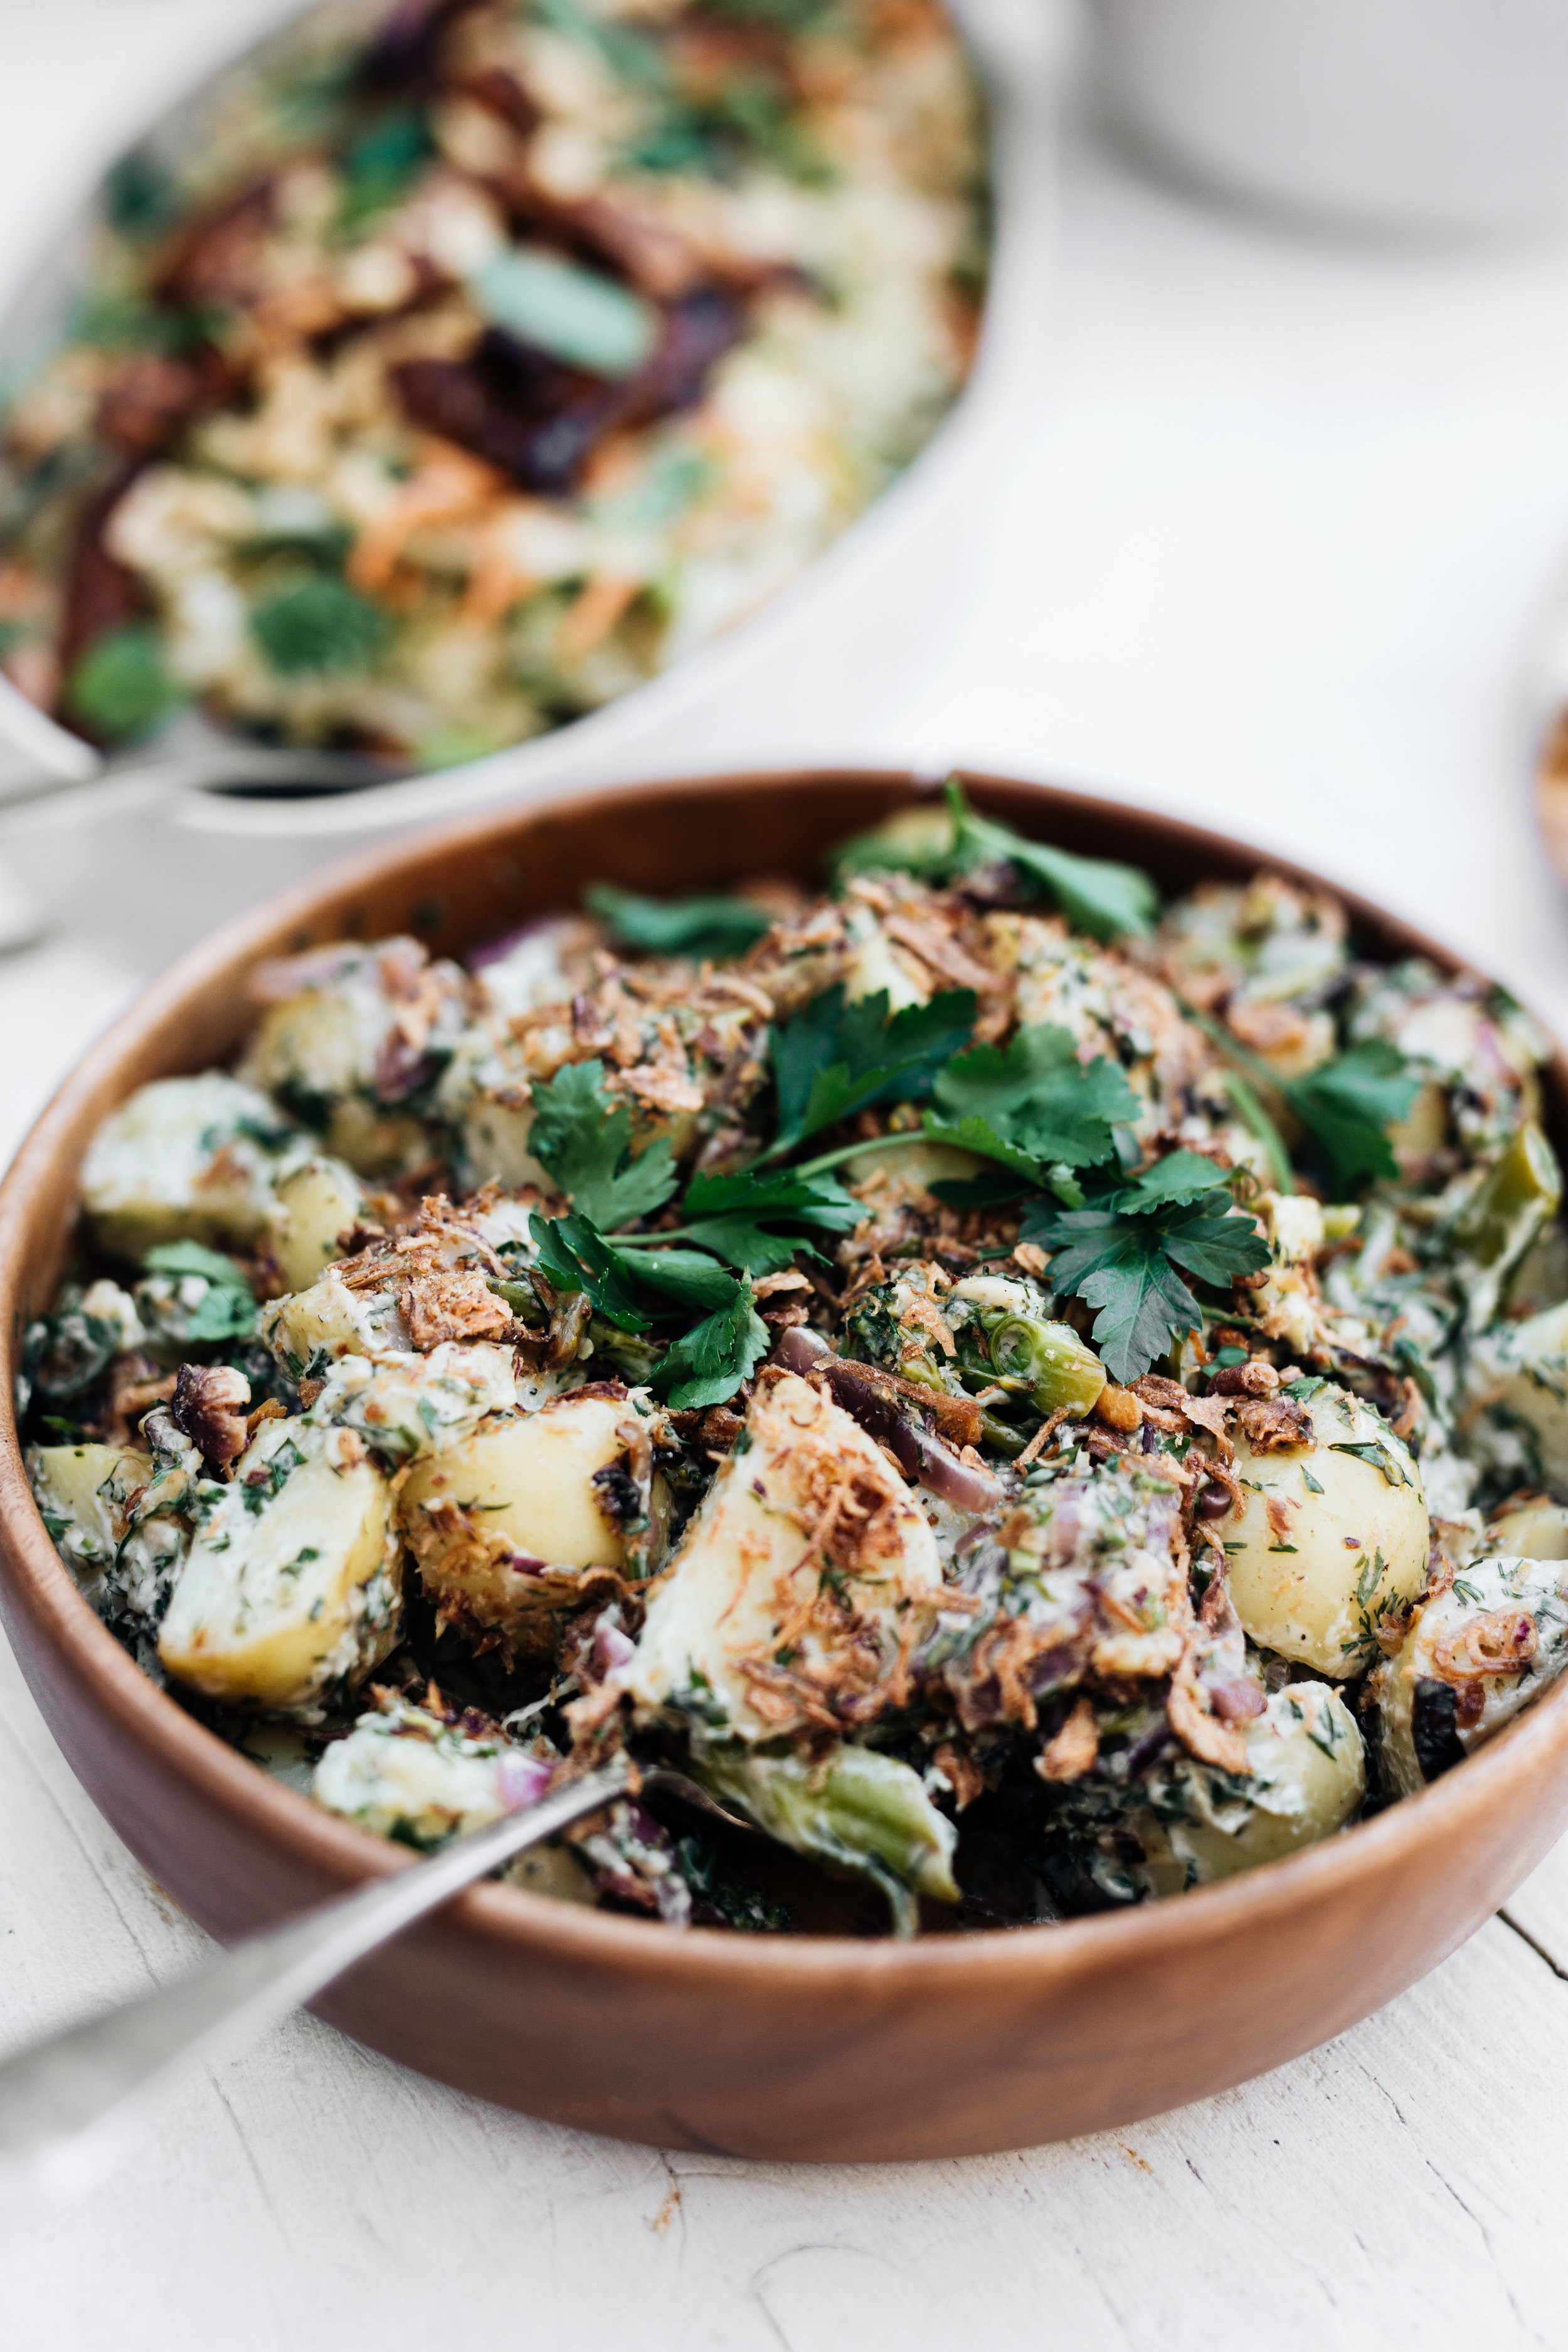 Vegan Potato and Broccolini Salad - Vegan, gluten free, leftover friendlyServes 8 as a side